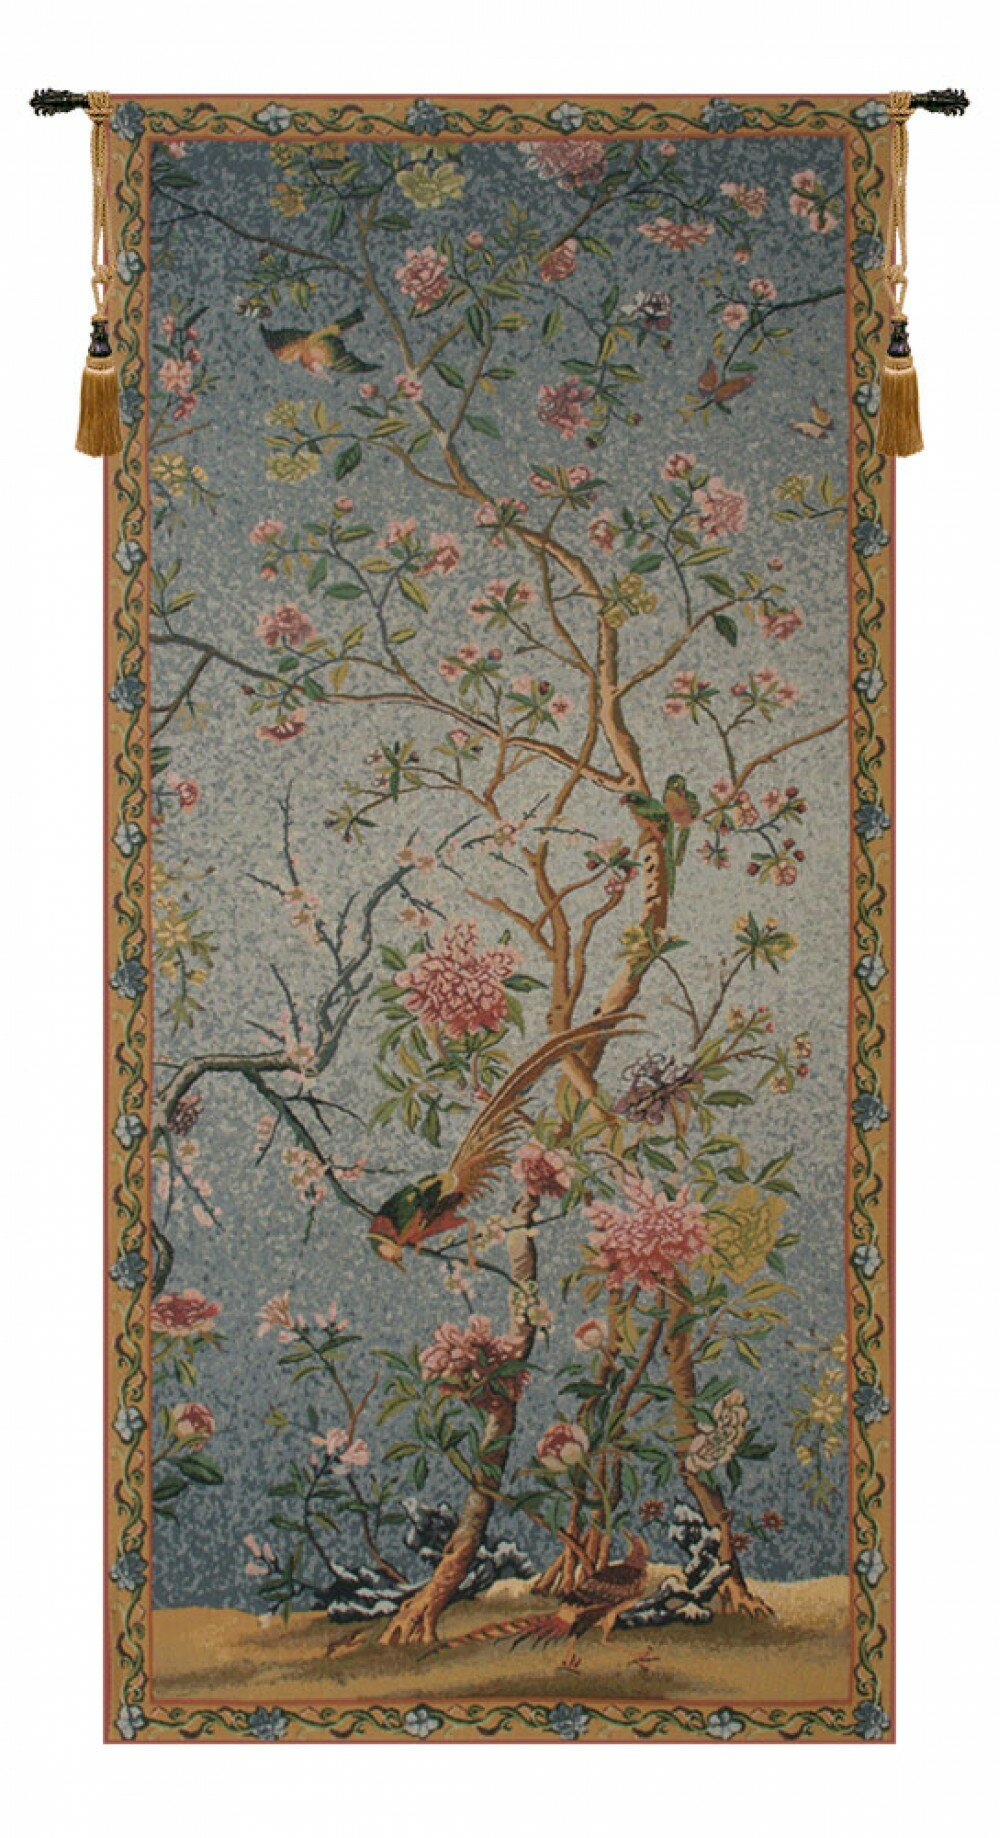 Spring Blossom Tapestry Intended For Most Recent Blended Fabric Ethereal Days Chinoiserie Wall Hangings With Rod (View 4 of 20)